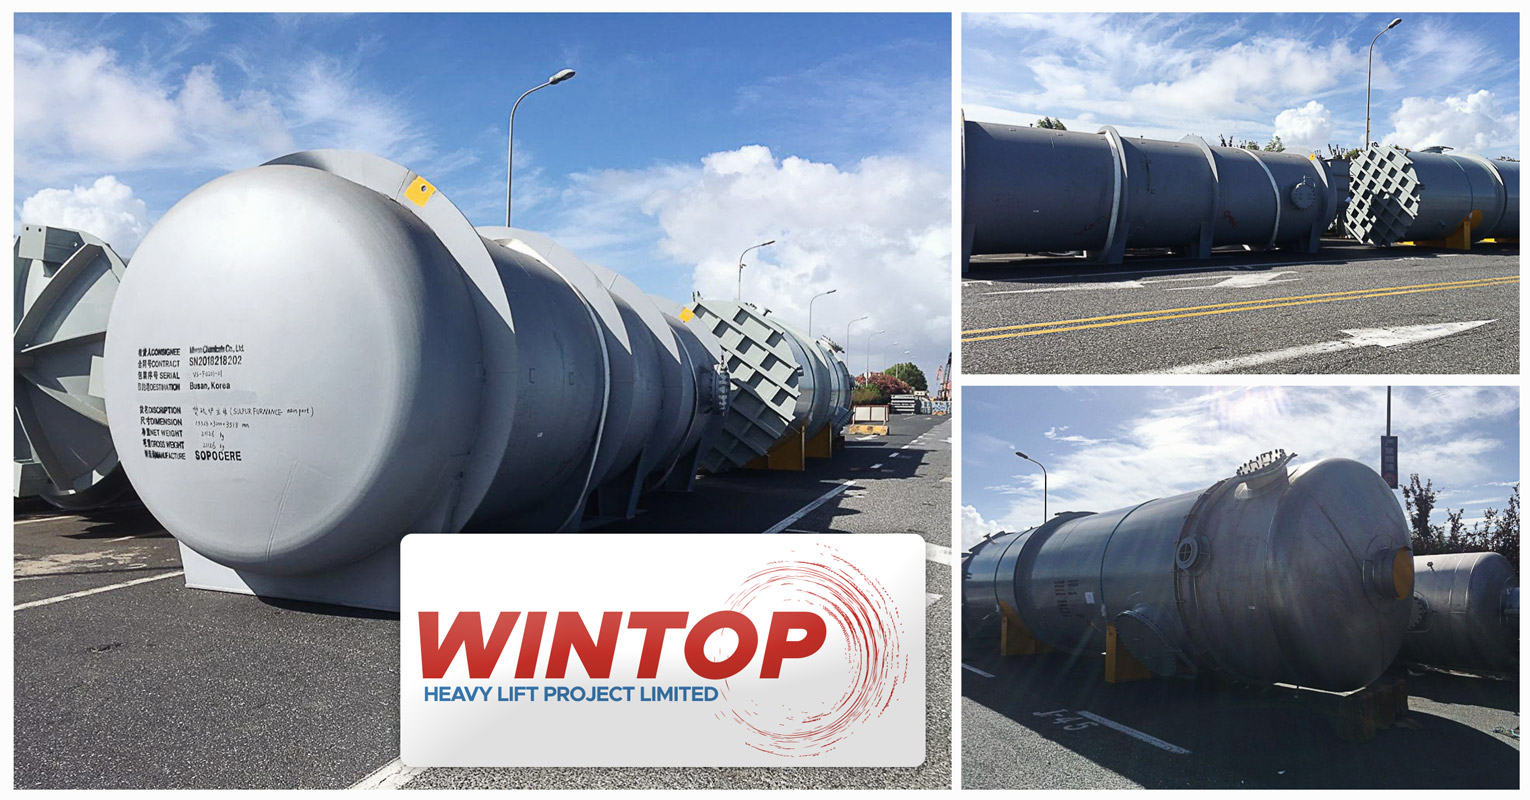 Wintop Heavy Lift Handled Drying Tower & Sulfur Furnace Cargo from Shanghai to Busan